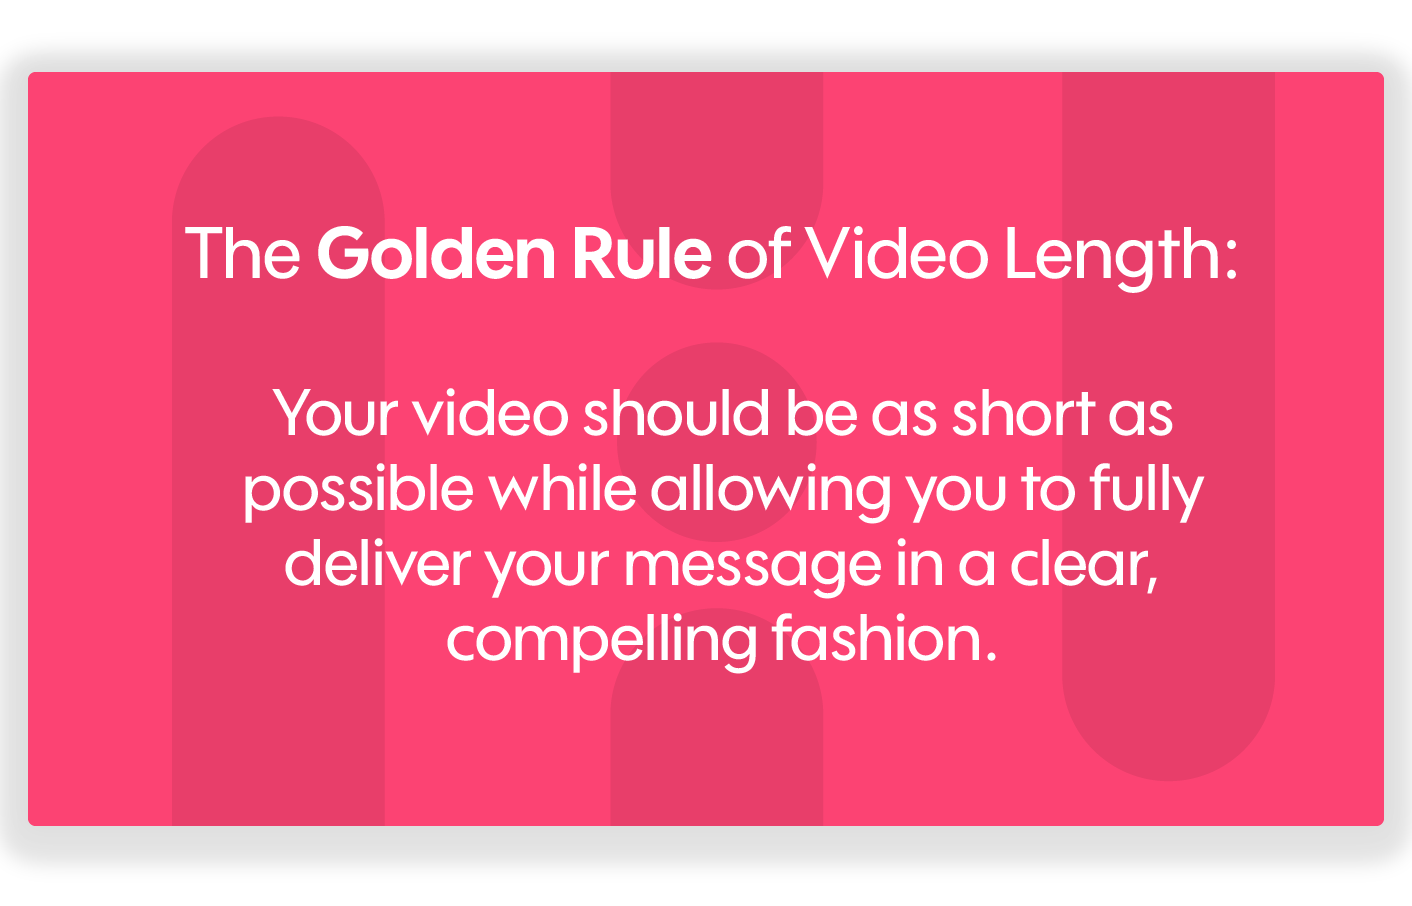 The golden rule of video length